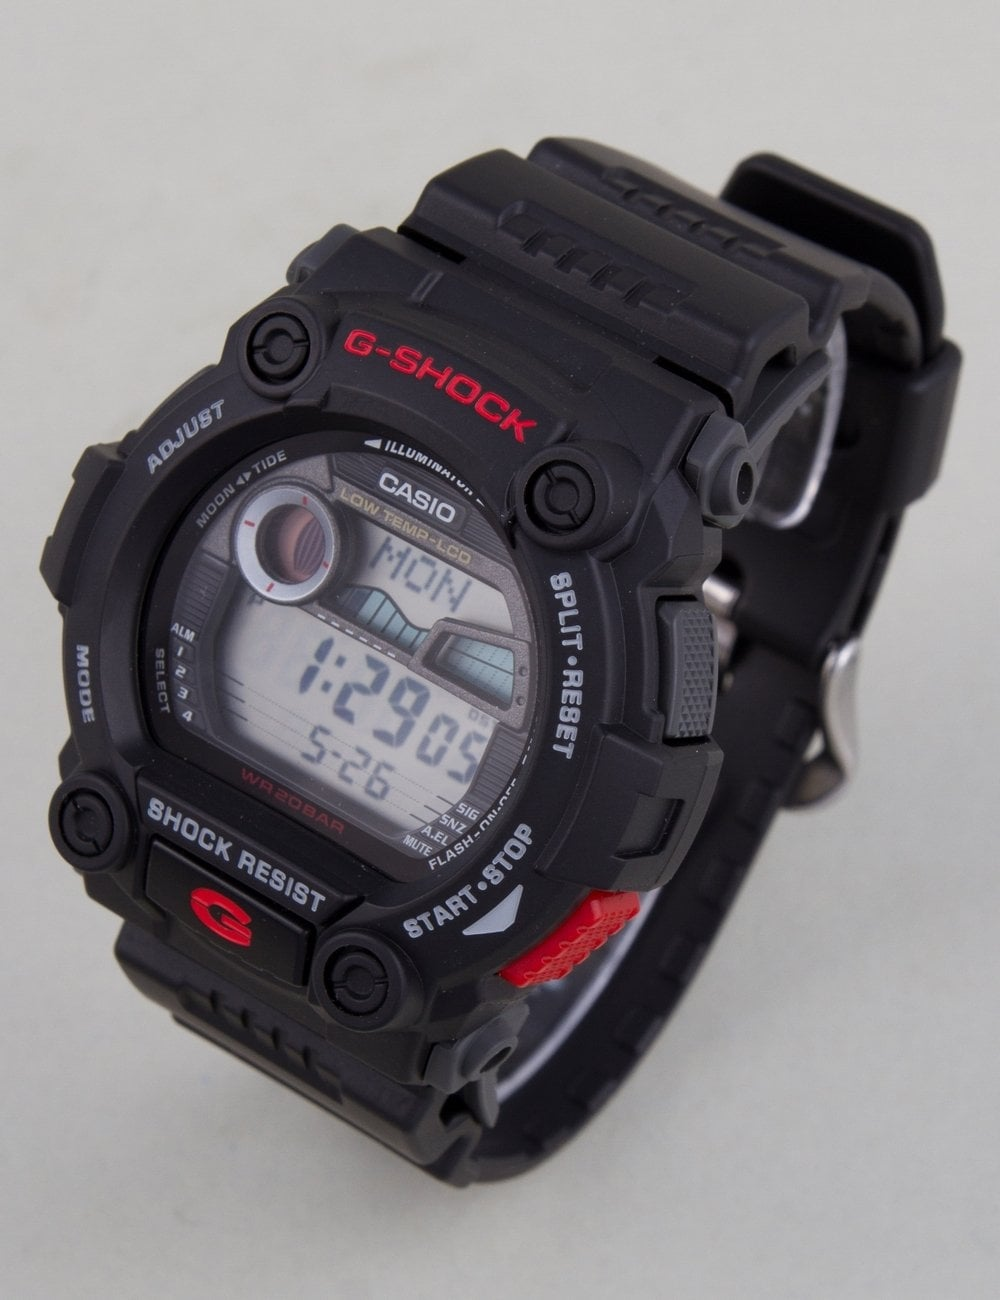 54dbabe737461 G-Shock G-7900-1ER Watch - Black Red - Accessories from Fat Buddha ...